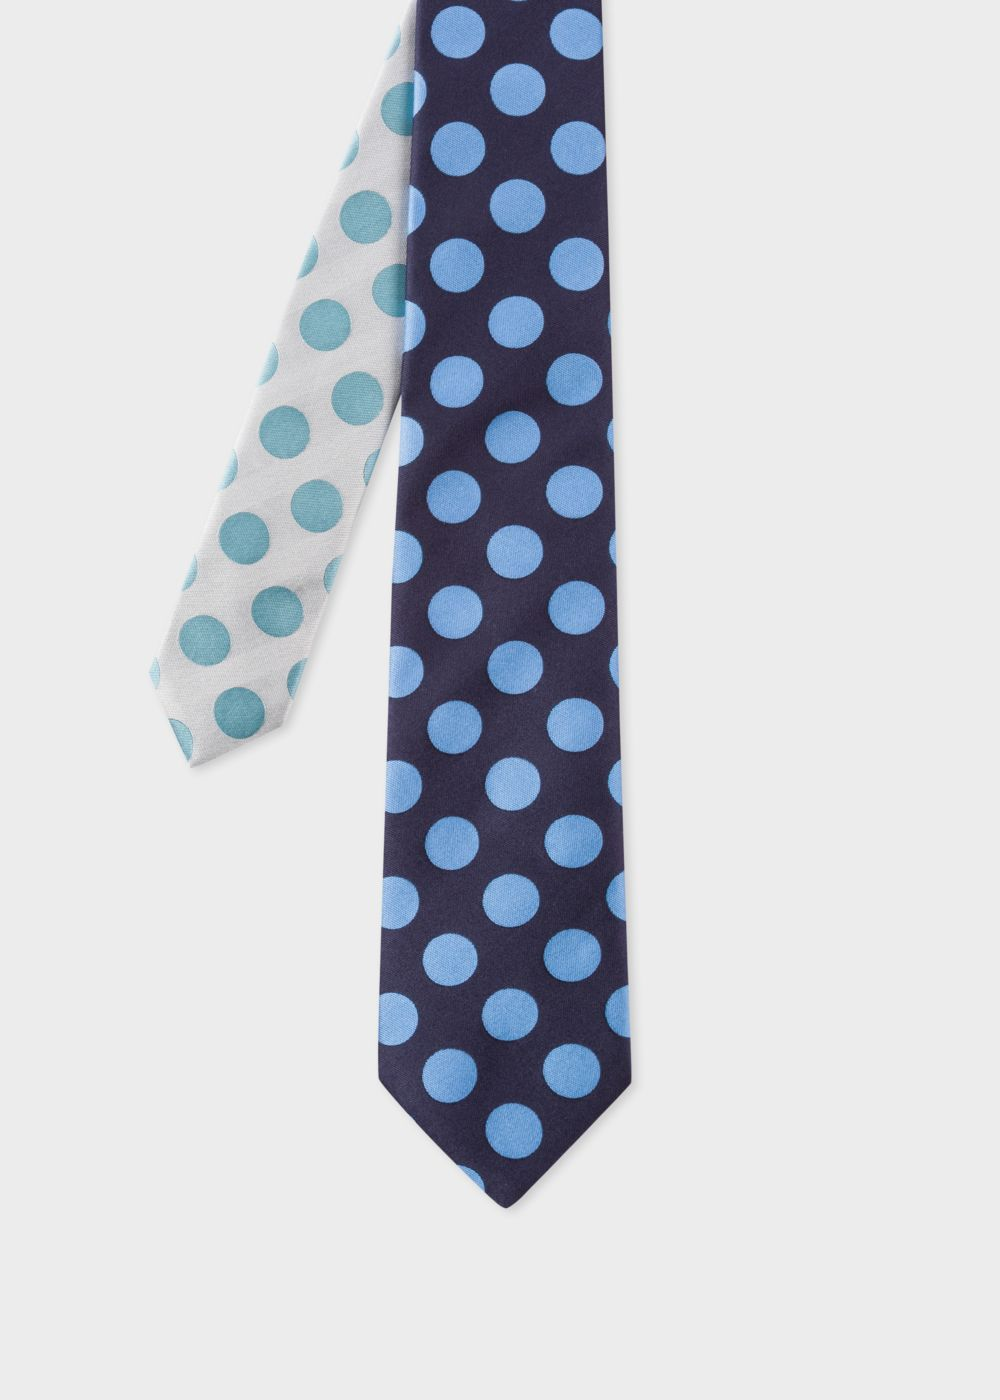 Paul Smith Men's Navy And Sky Blue Polka Dot Contrast-Tip Silk Tie